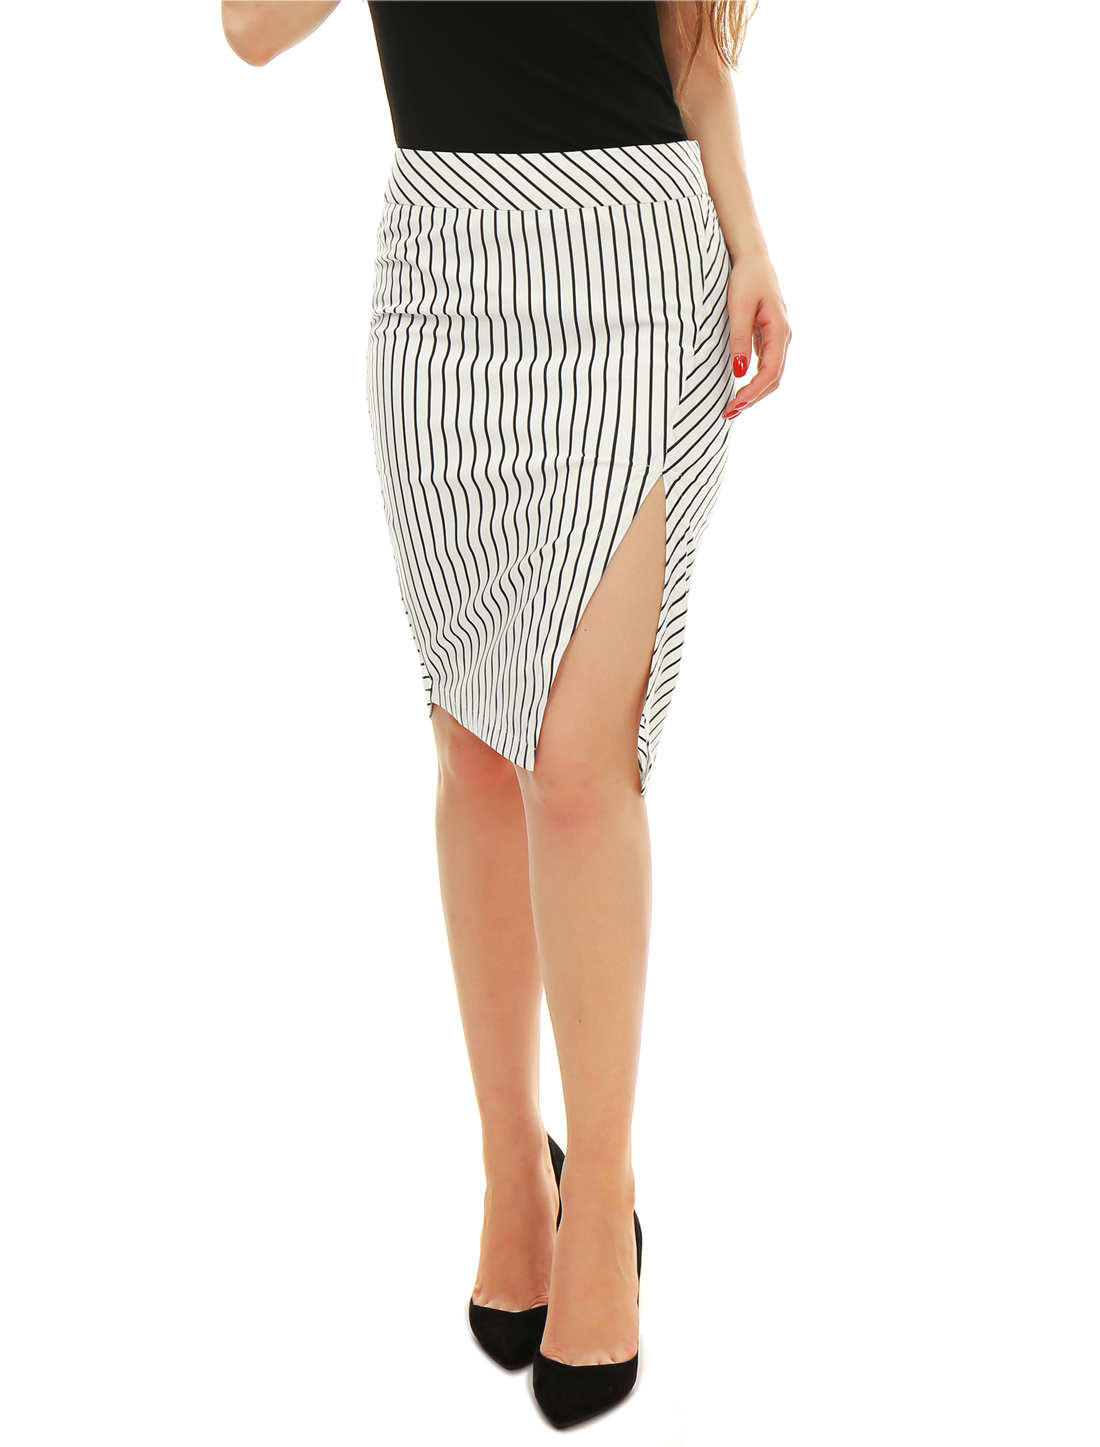 Woman Stripes High Vent Concealed Zip Closure Pencil Skirt Black White XS